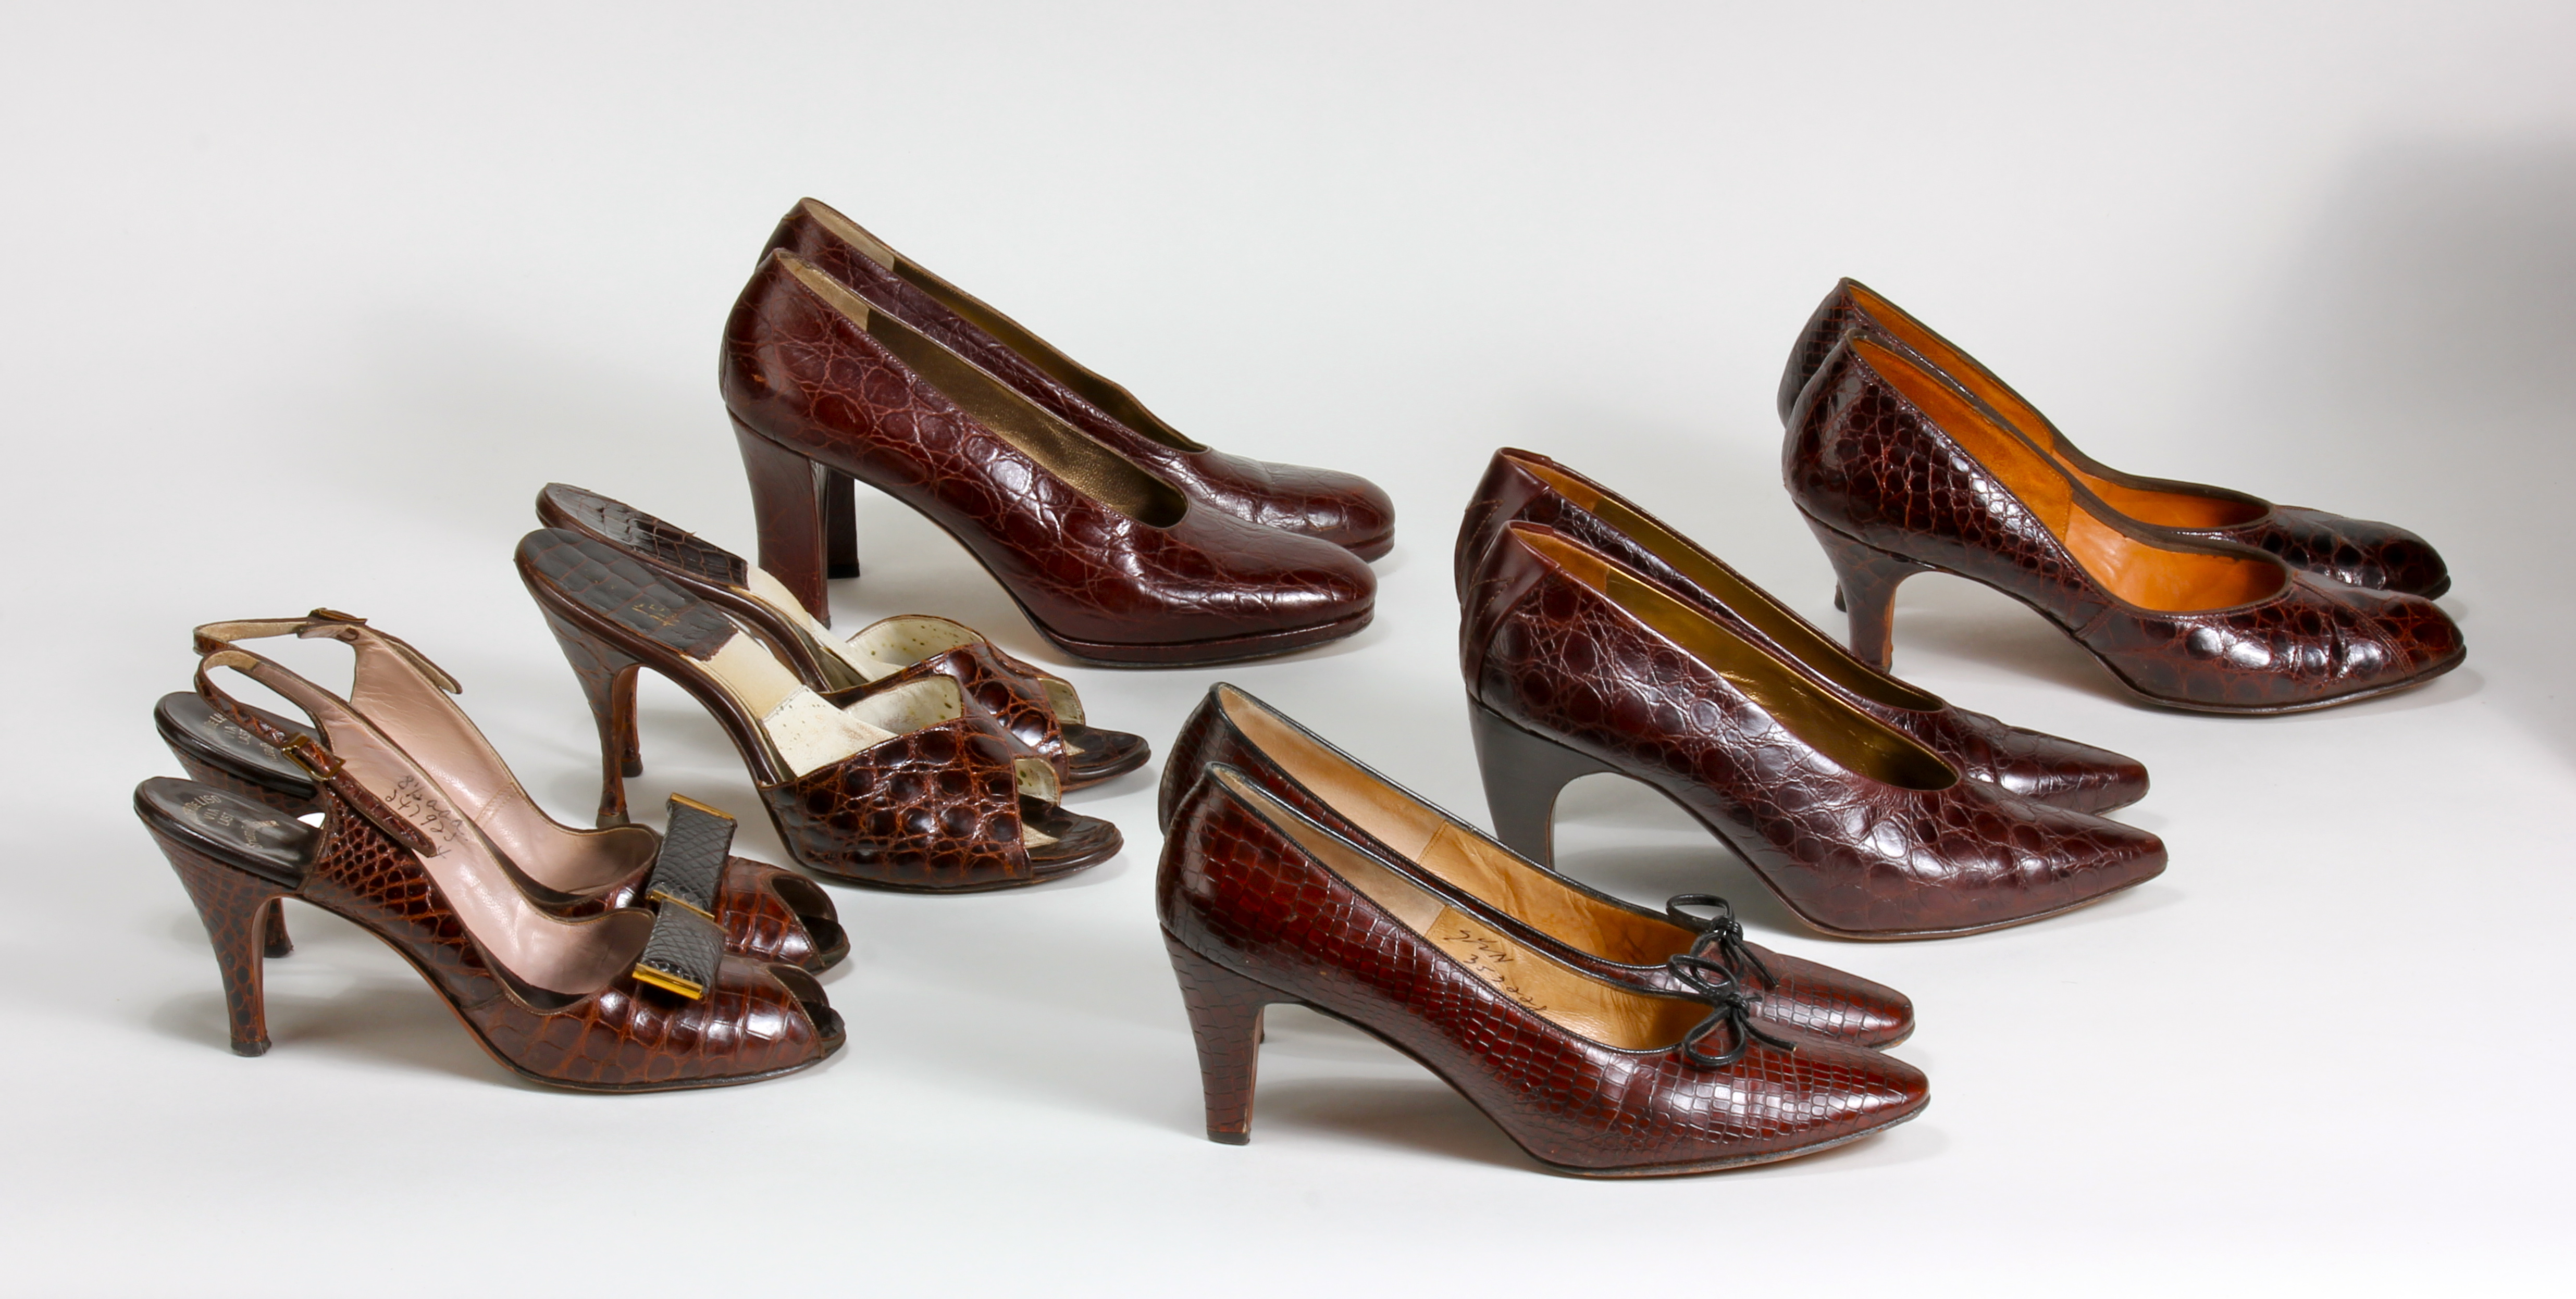 Vintage Shoes Online India